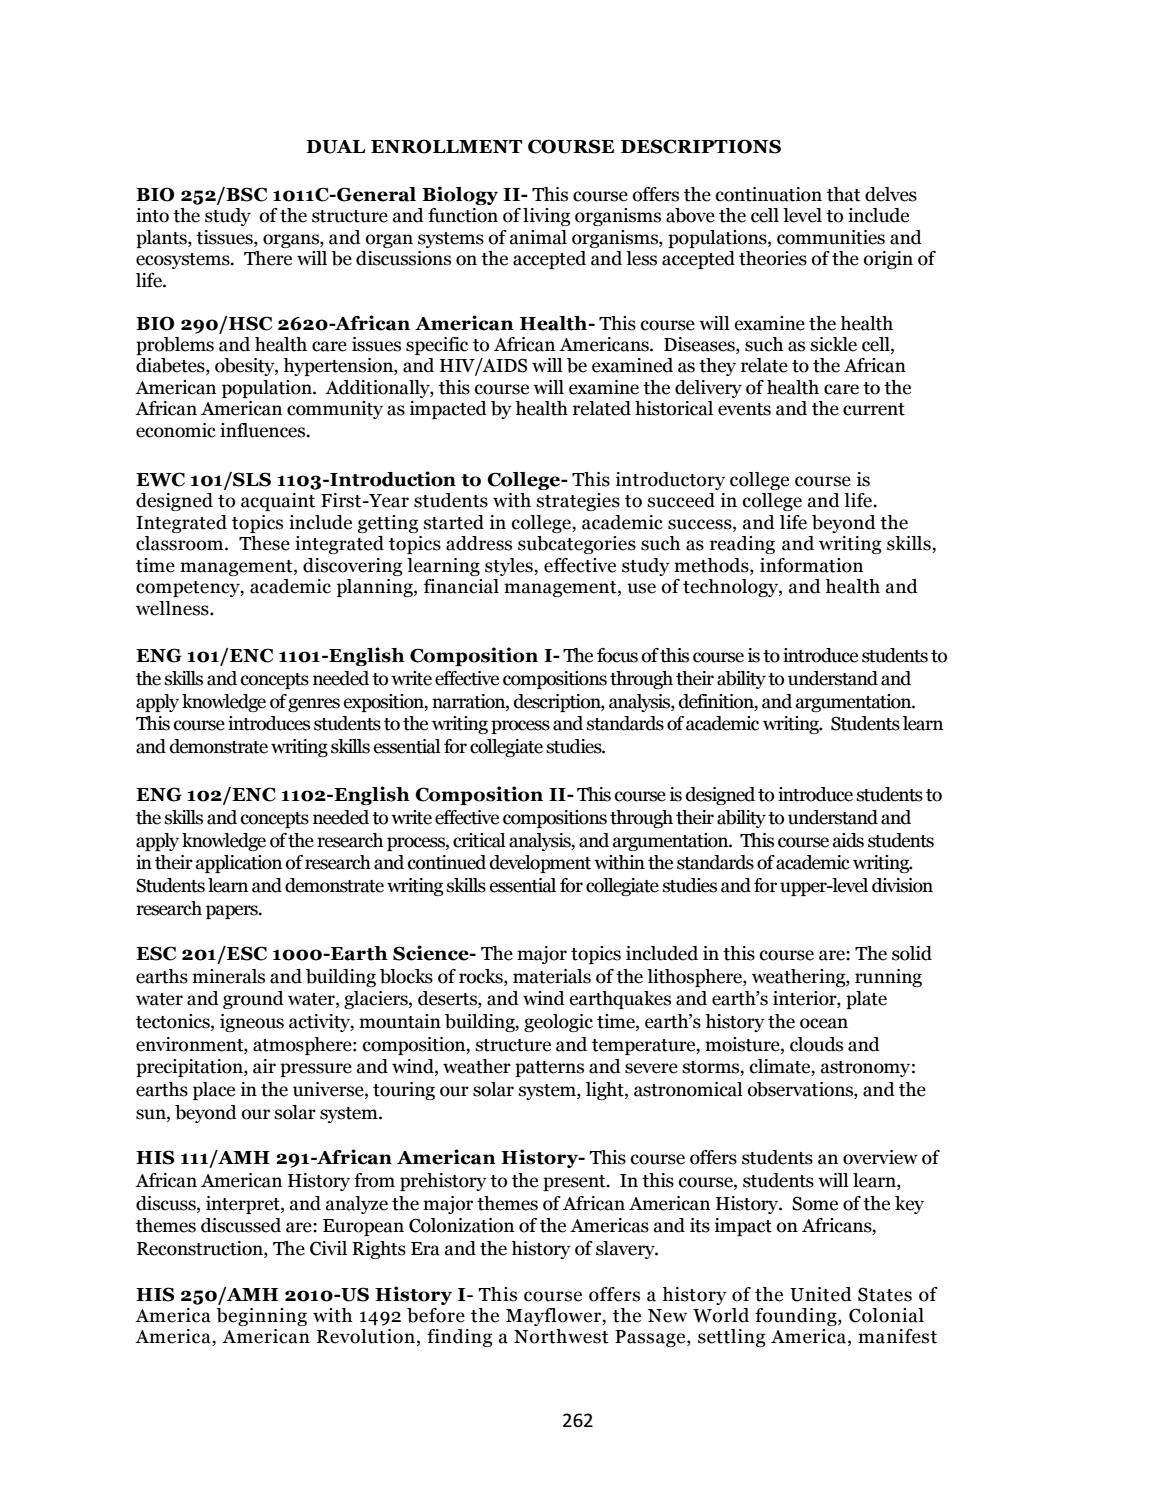 010 Page 259 Research Paper Good Topics For English Surprising 102 Full